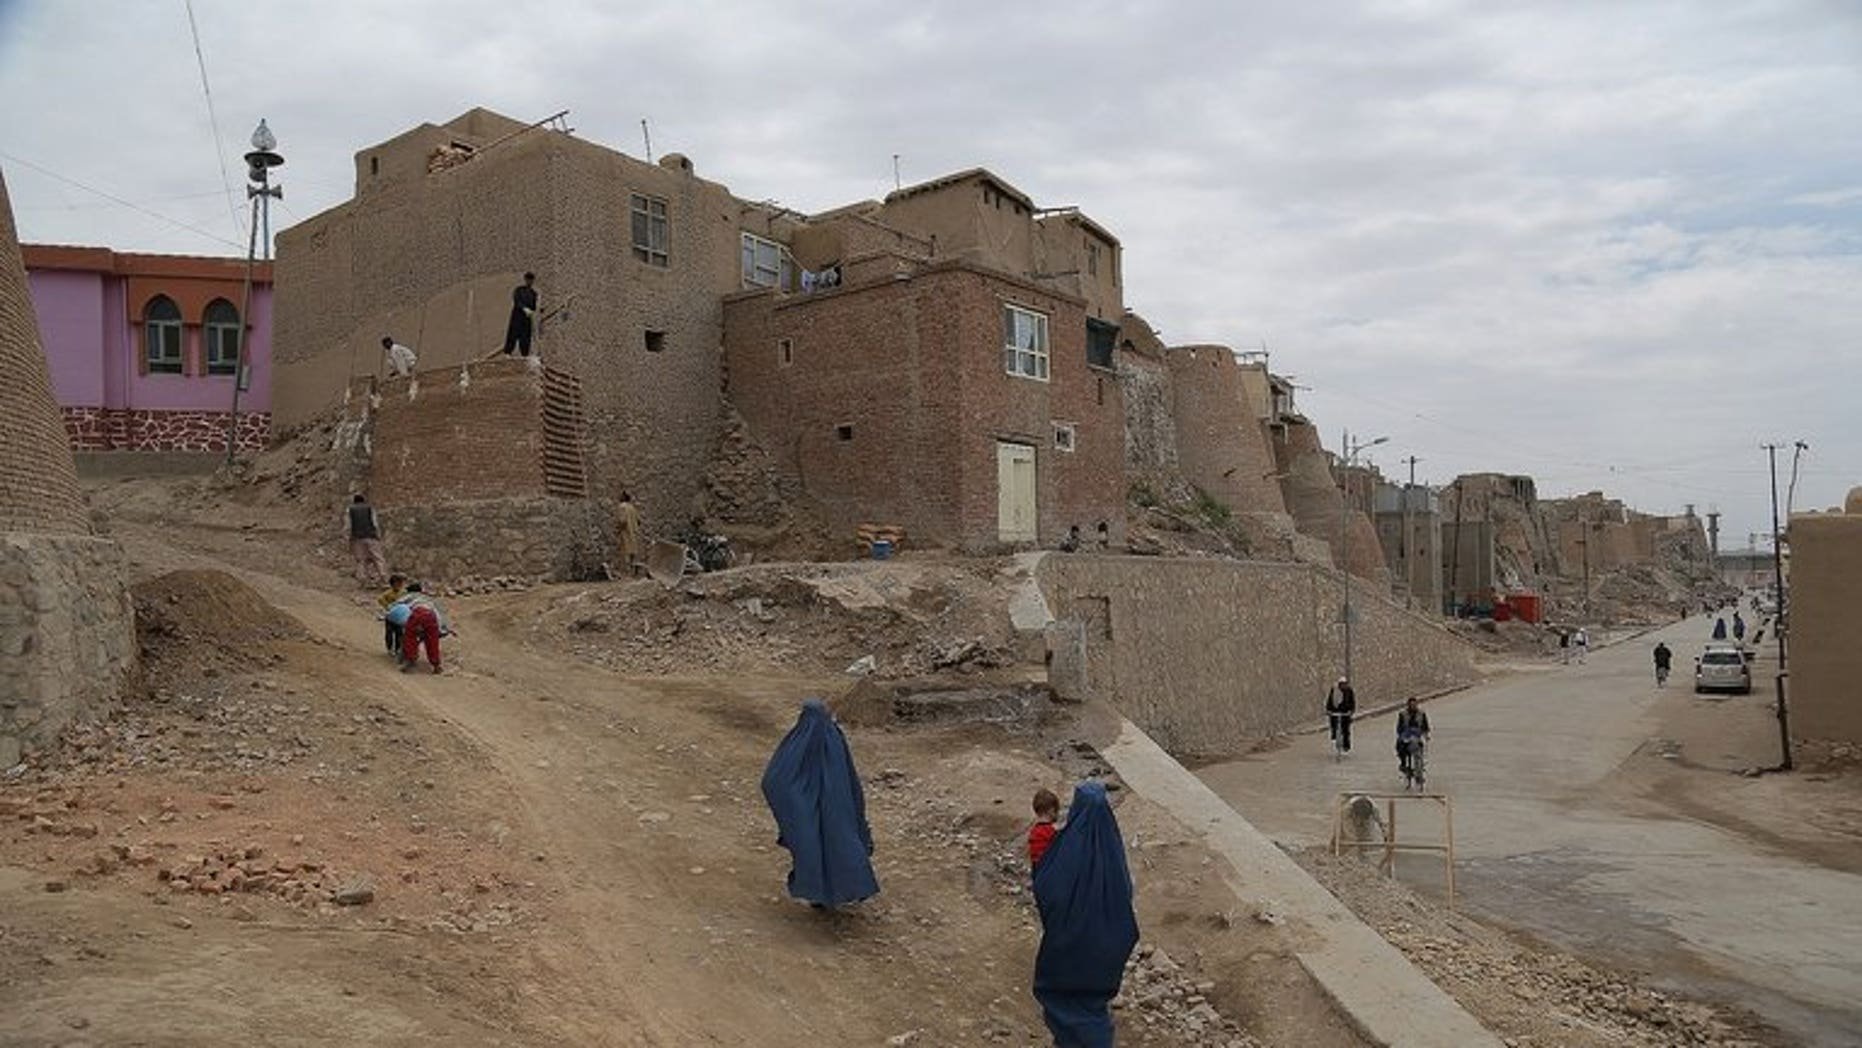 Afghan residents walk in a section of the old city in Ghazni province on June 30, 2013. A suicide bomber on a motorcycle struck a busy marketplace in the area, killing at least seven people including an anti-Taliban militia leader, officials said.